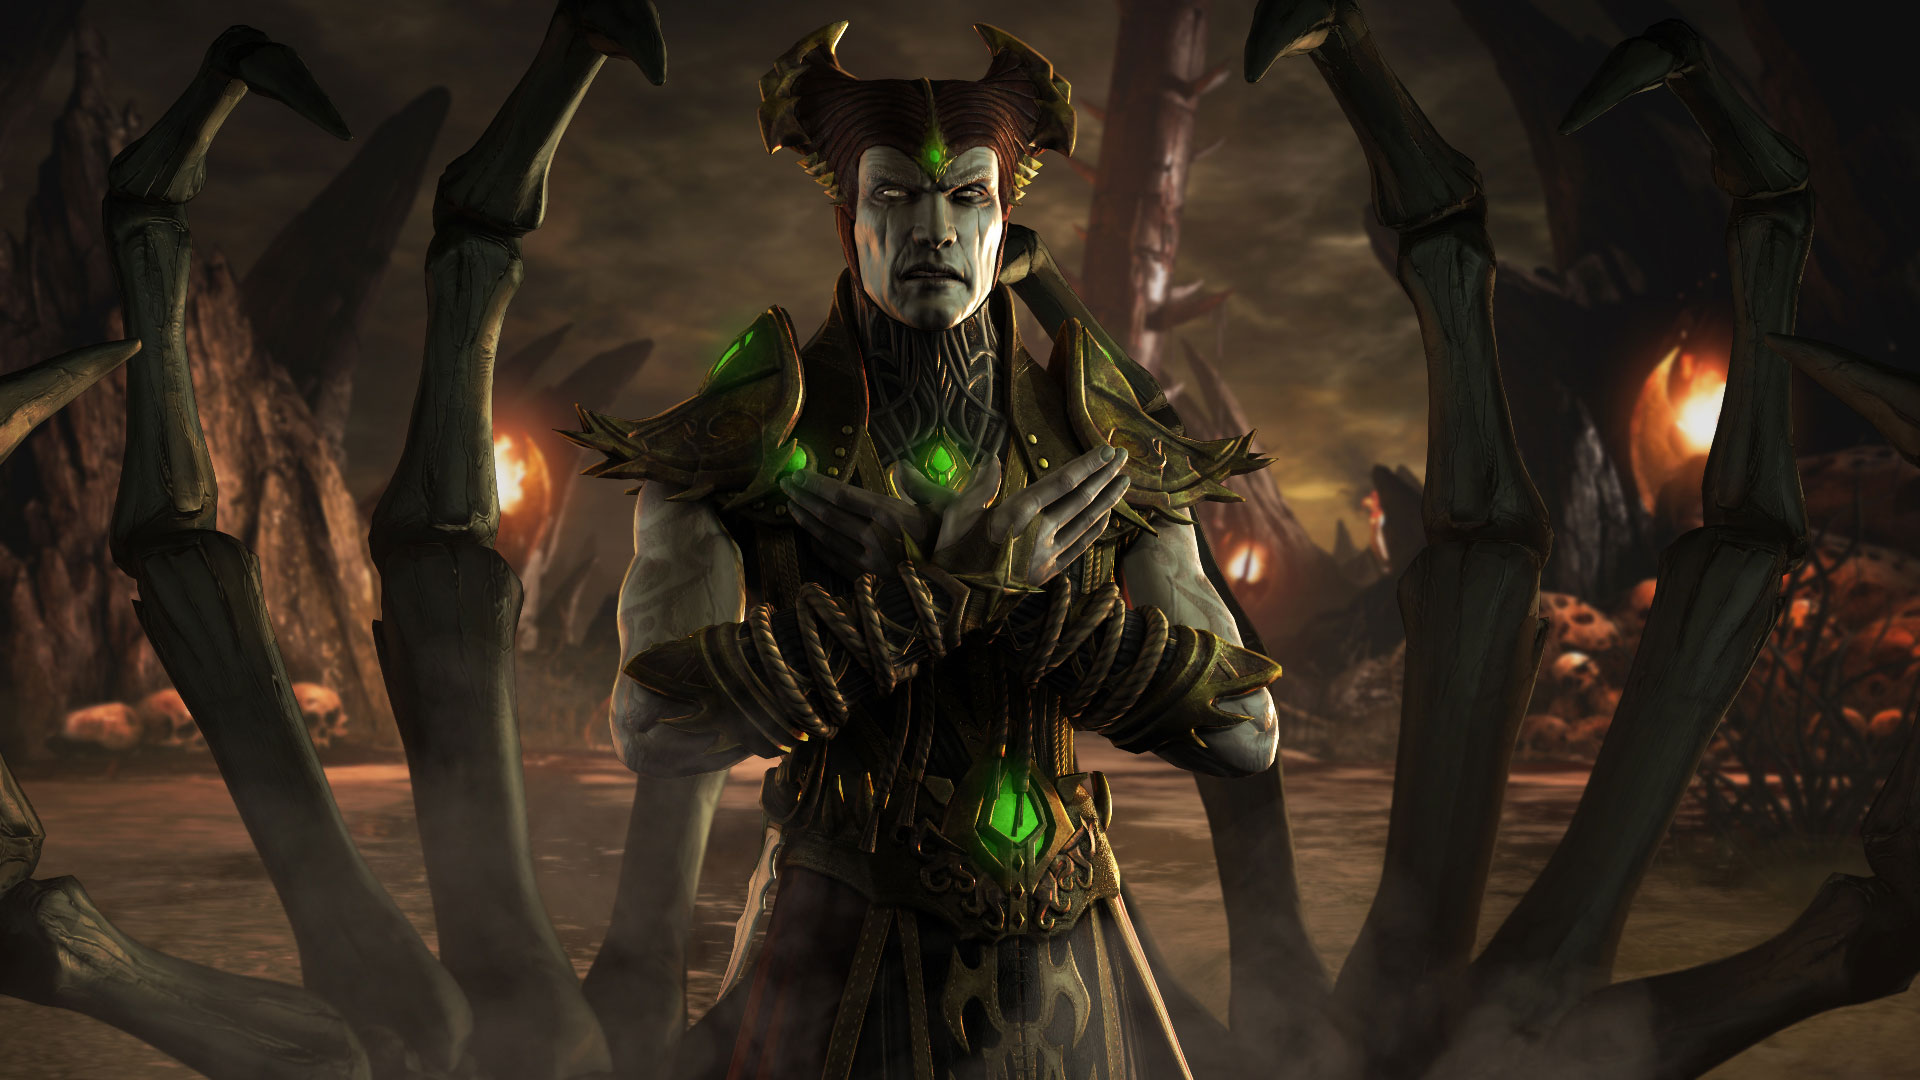 Wallpaper Iphone X Full Hd Mkwarehouse Mortal Kombat X Shinnok